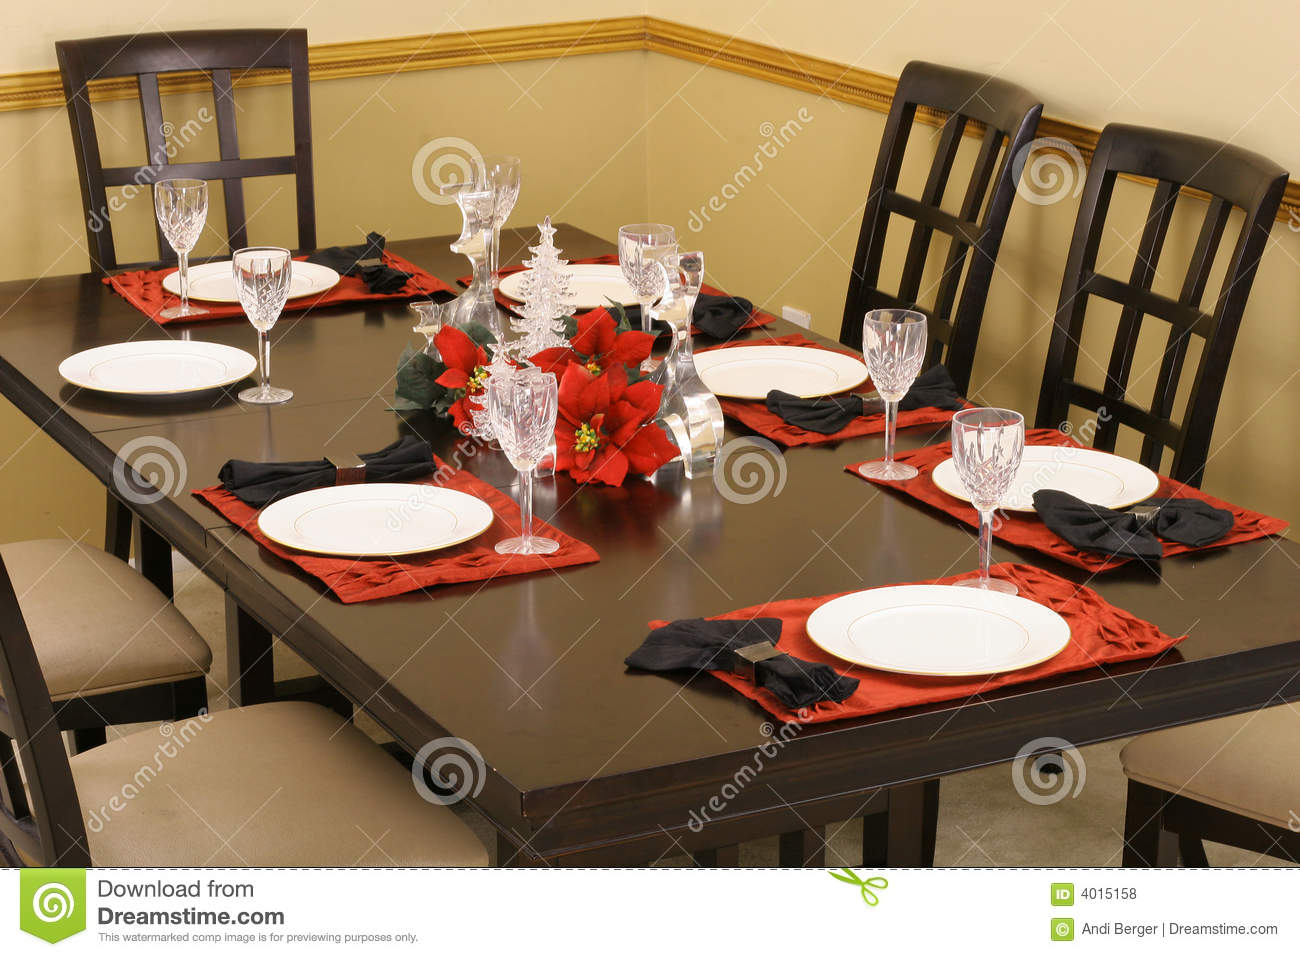 dining room table setting royalty free stock photos - Dining Room Table Settings